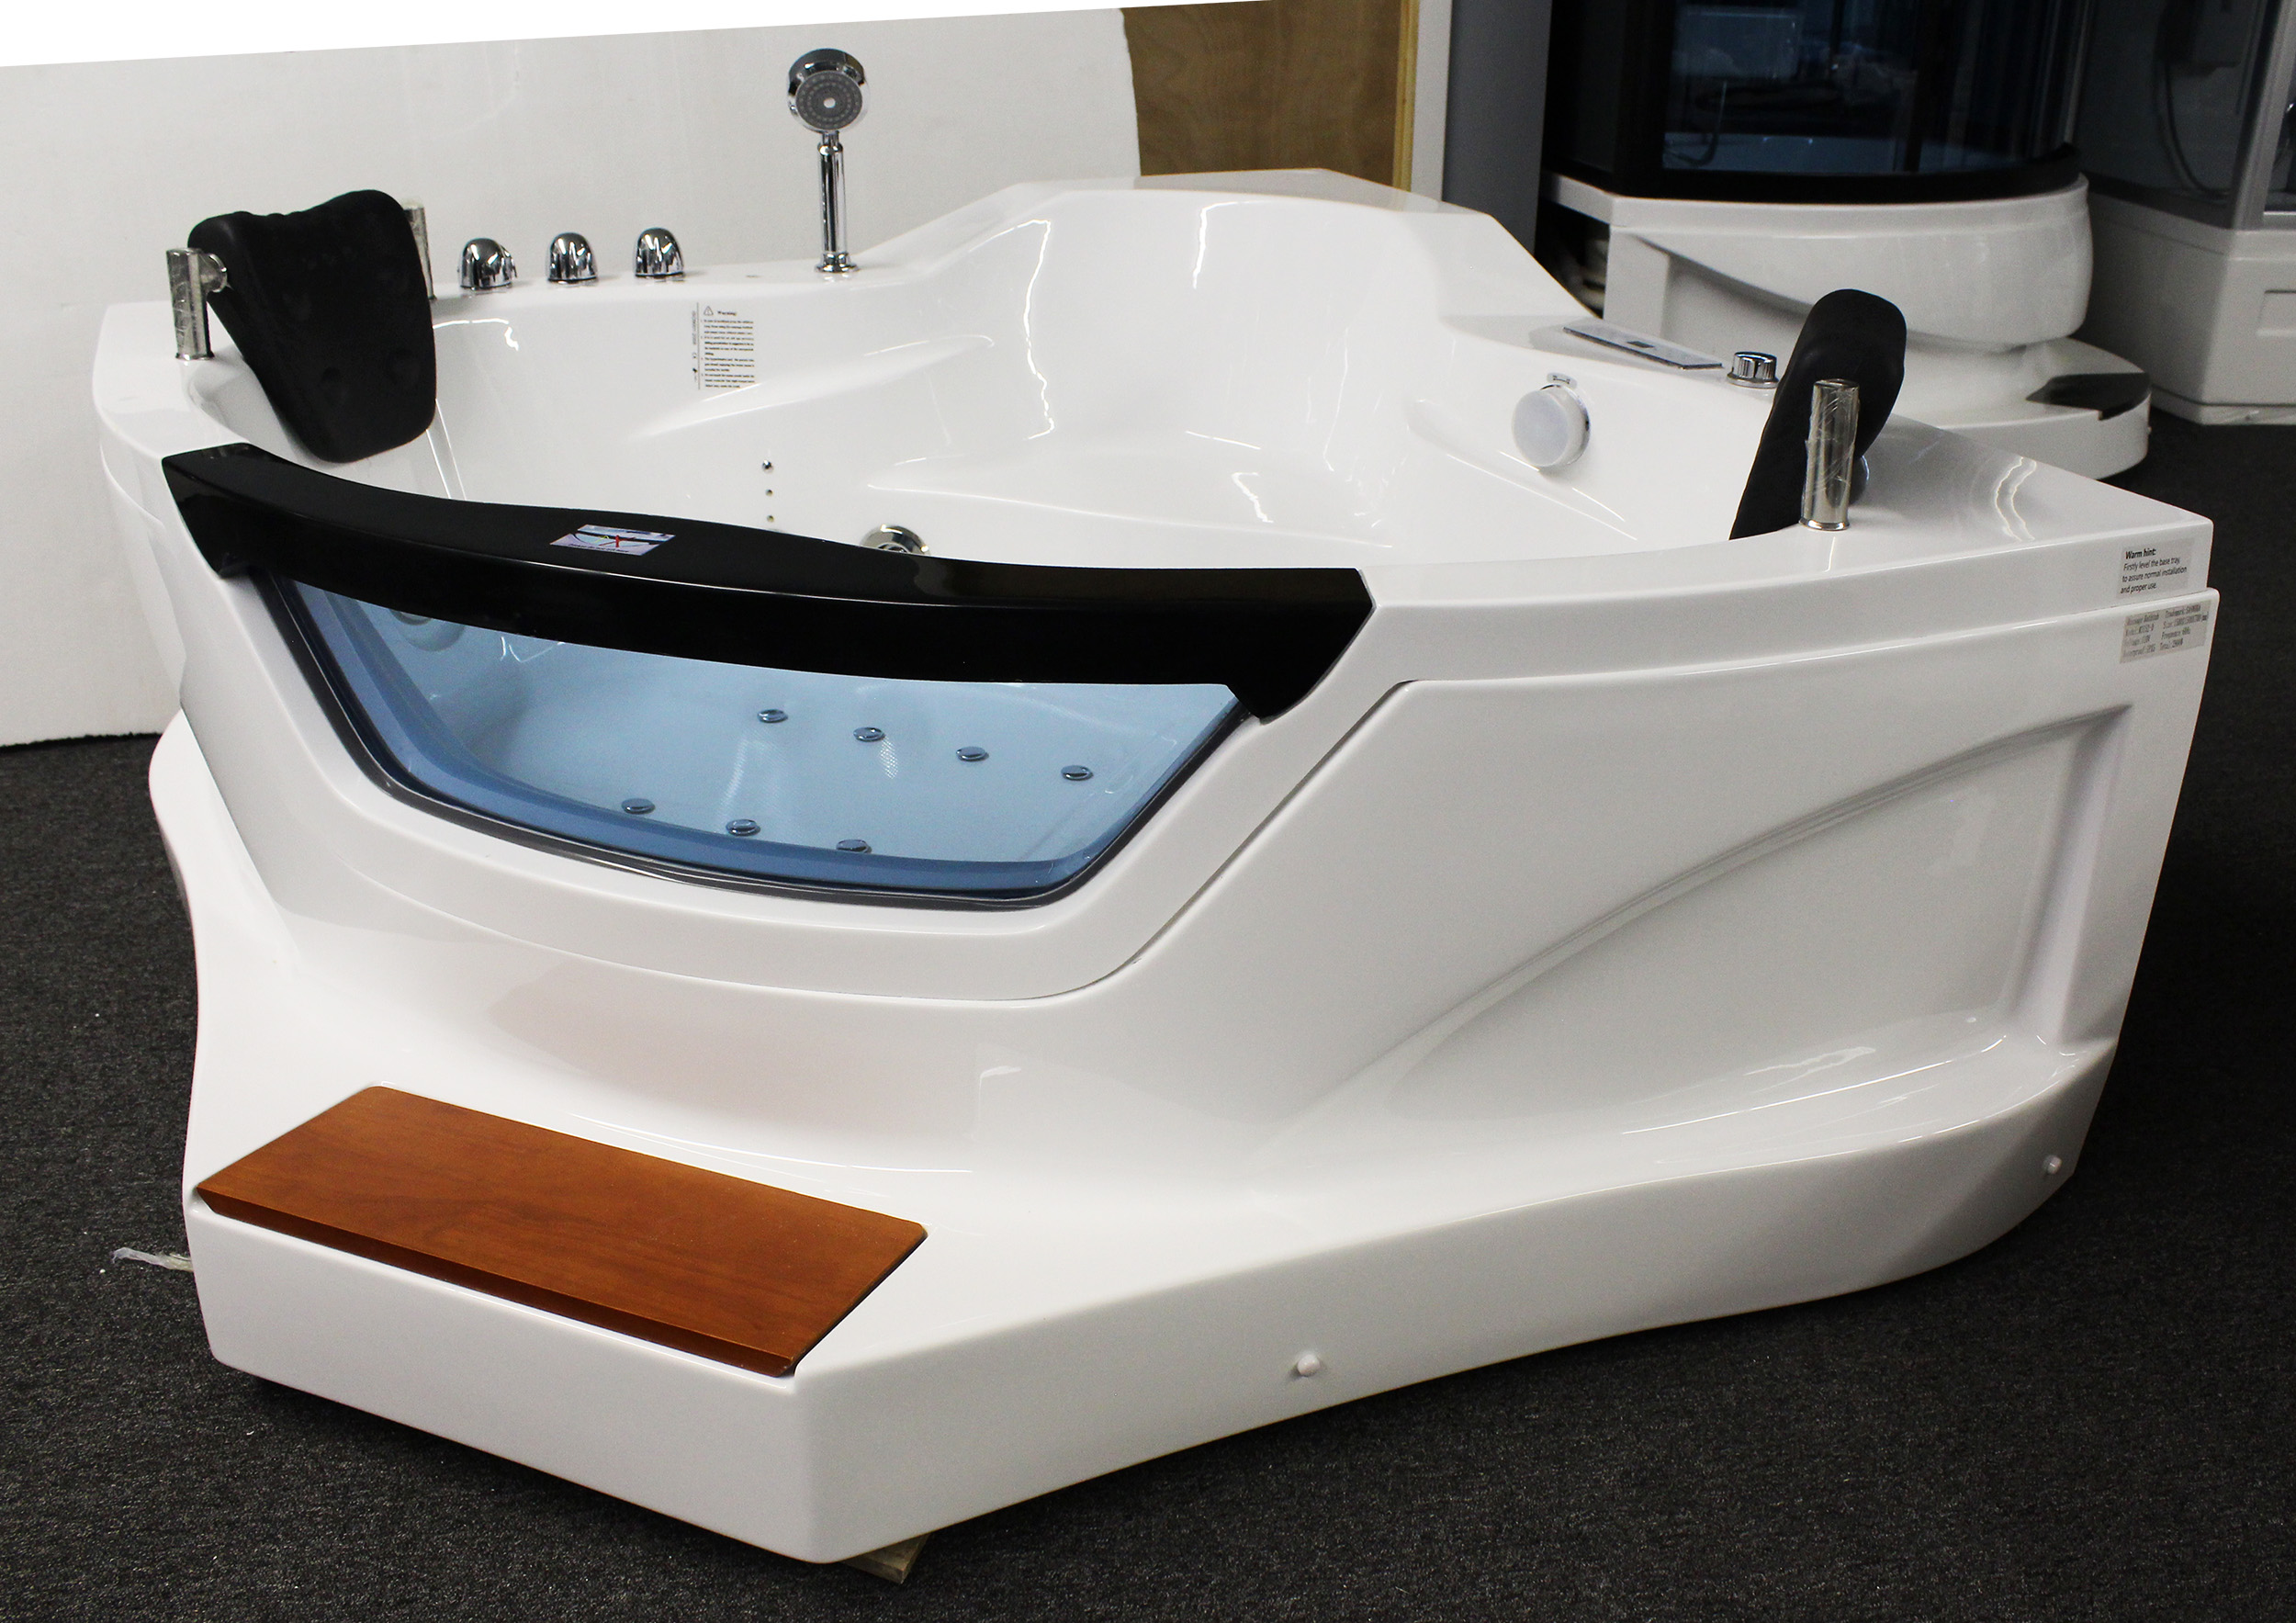 2 Person Jetted Bathtub W Air Bubble M3152 Best For Bath